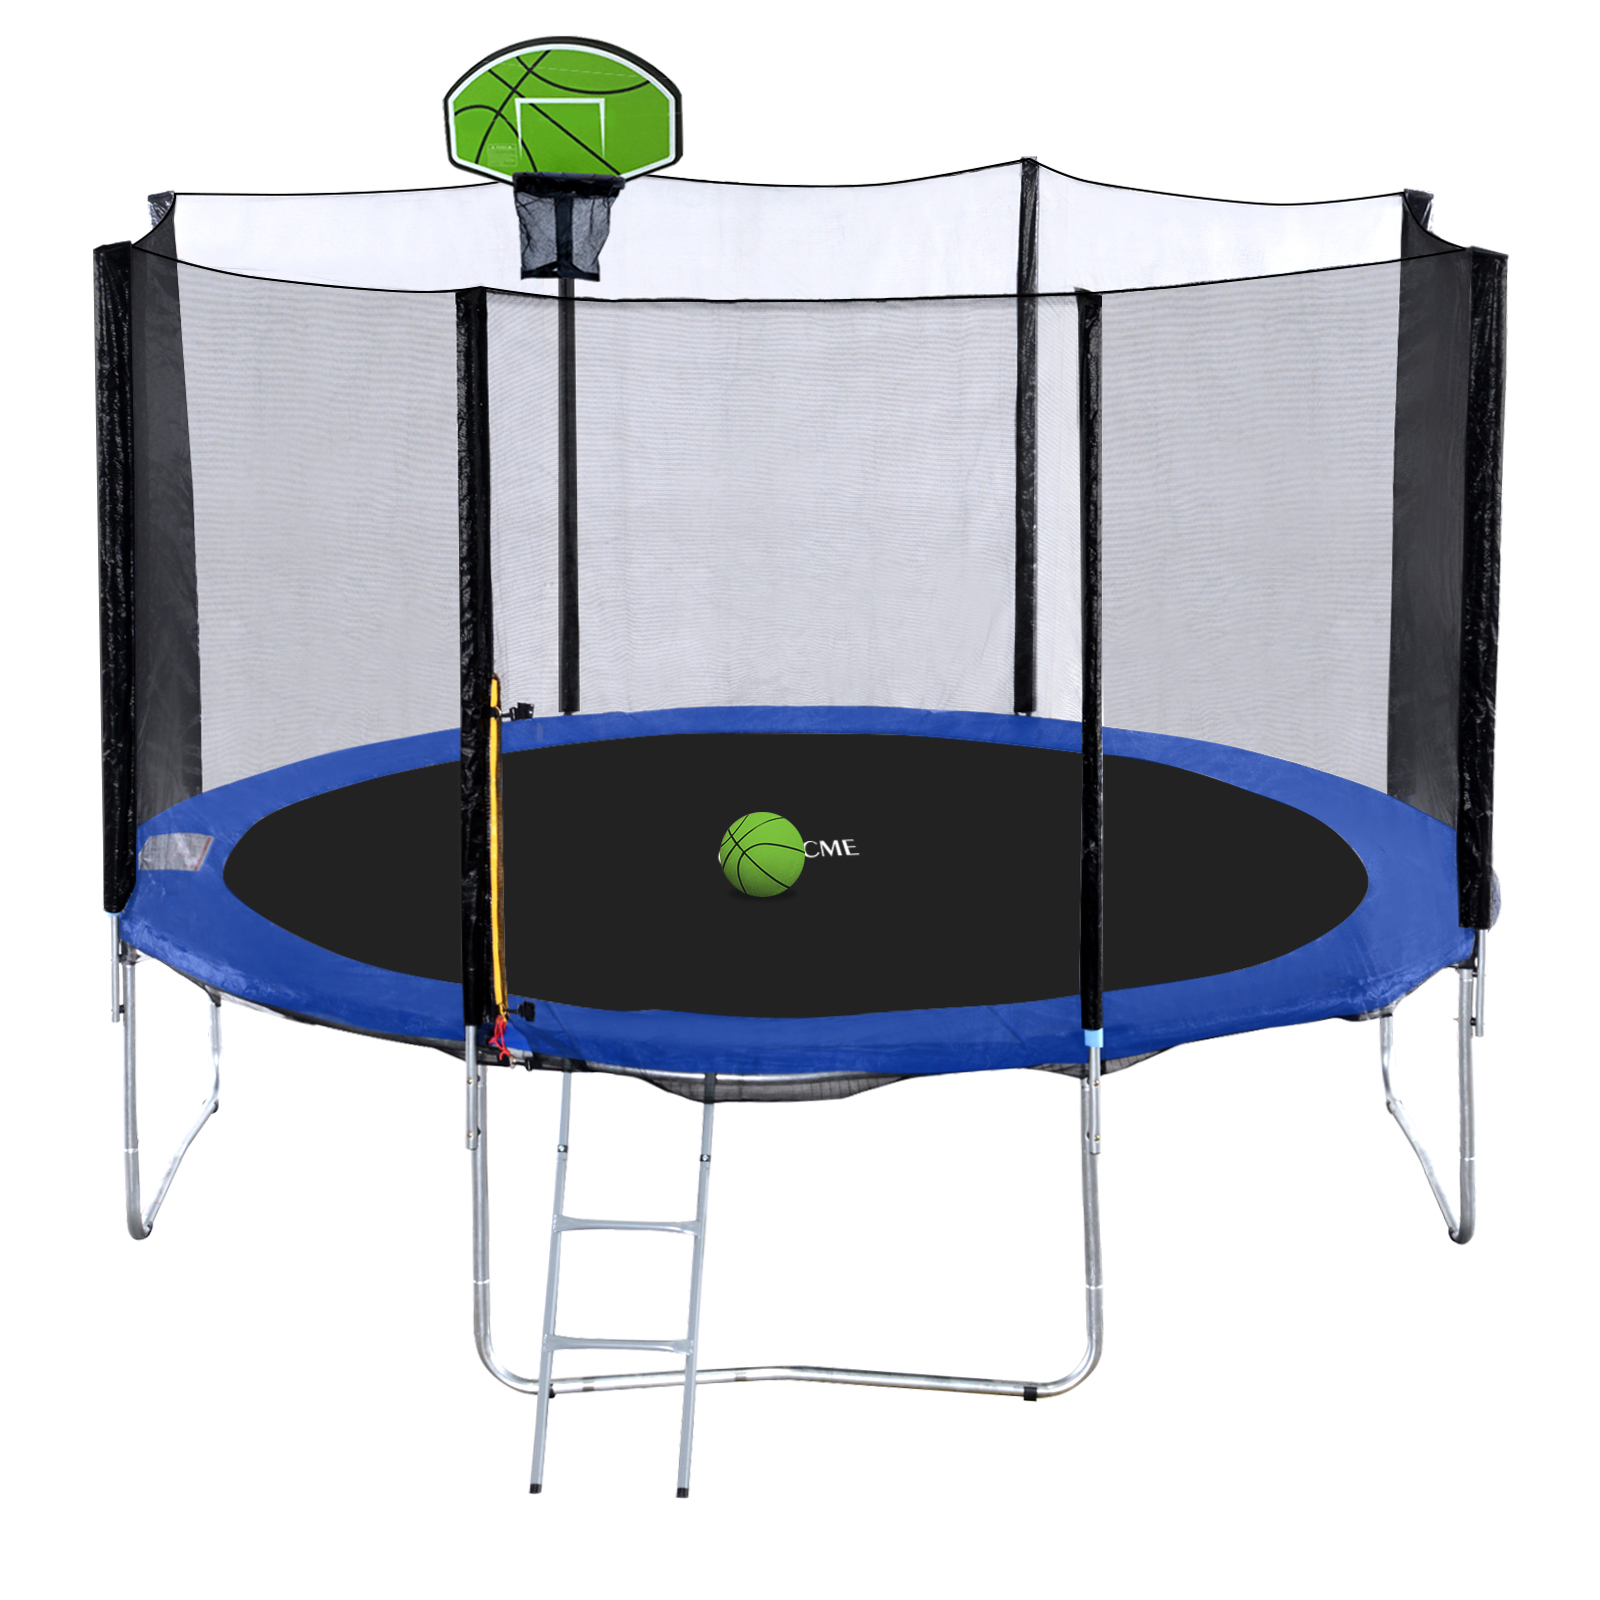 Exacme 12 FT Round Trampoline with Safety Pad,Enclosure Net,Ladder and Green Basketball Hoop,S-Series by Newacme LLC